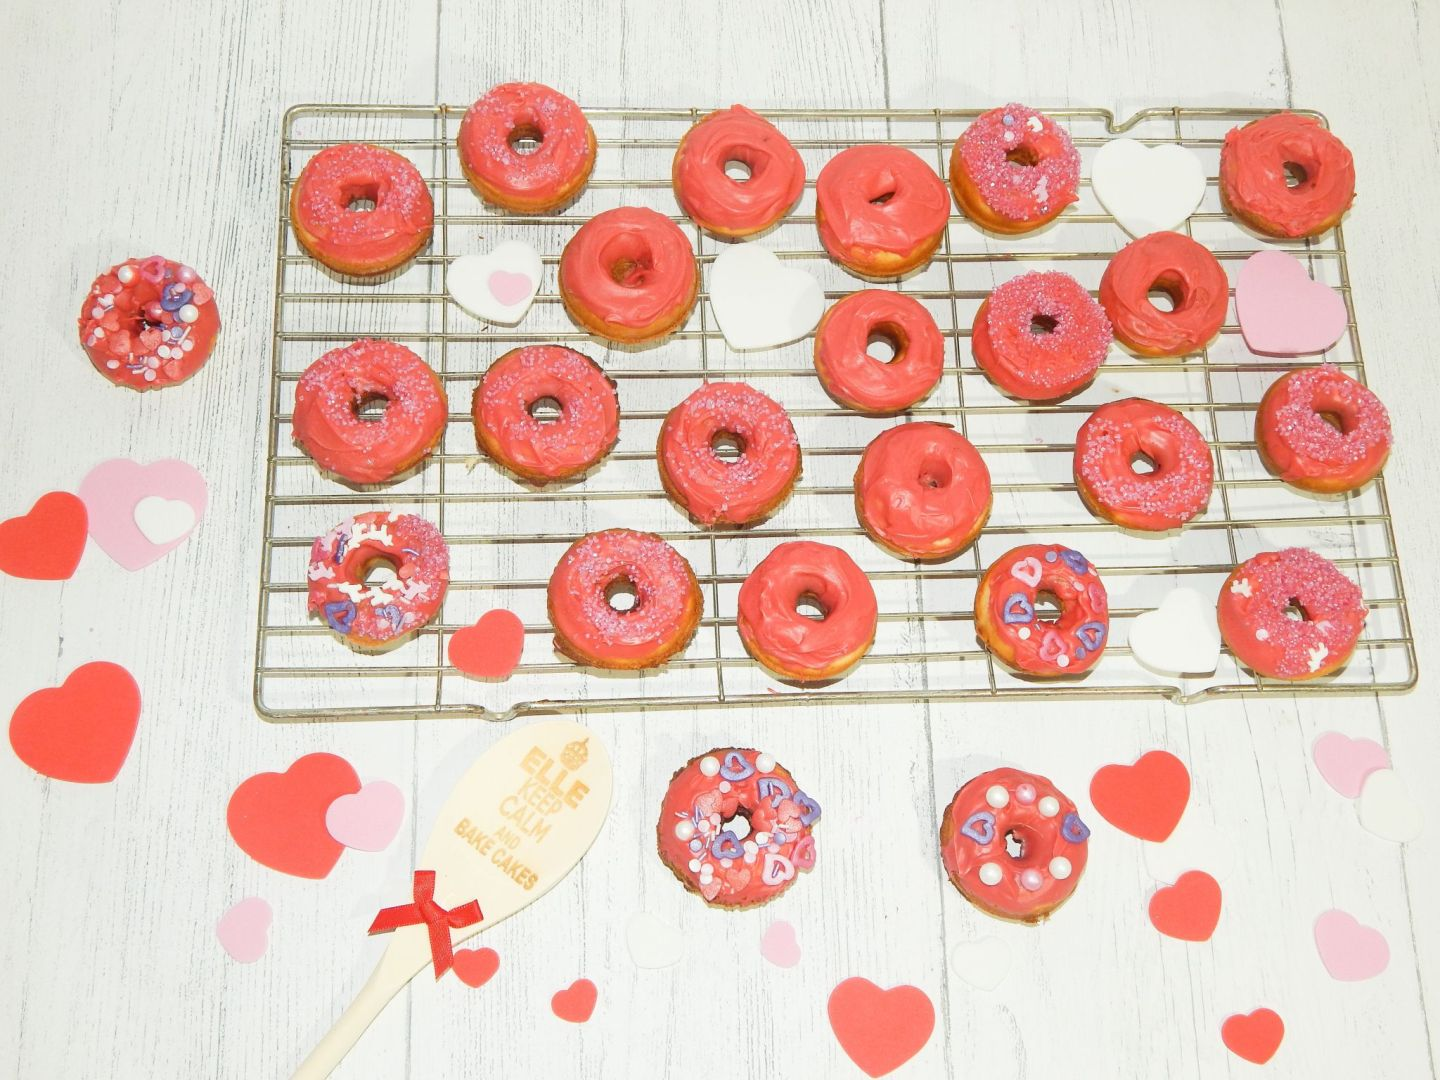 Homemade Valentines Day Inspired Doughnuts!